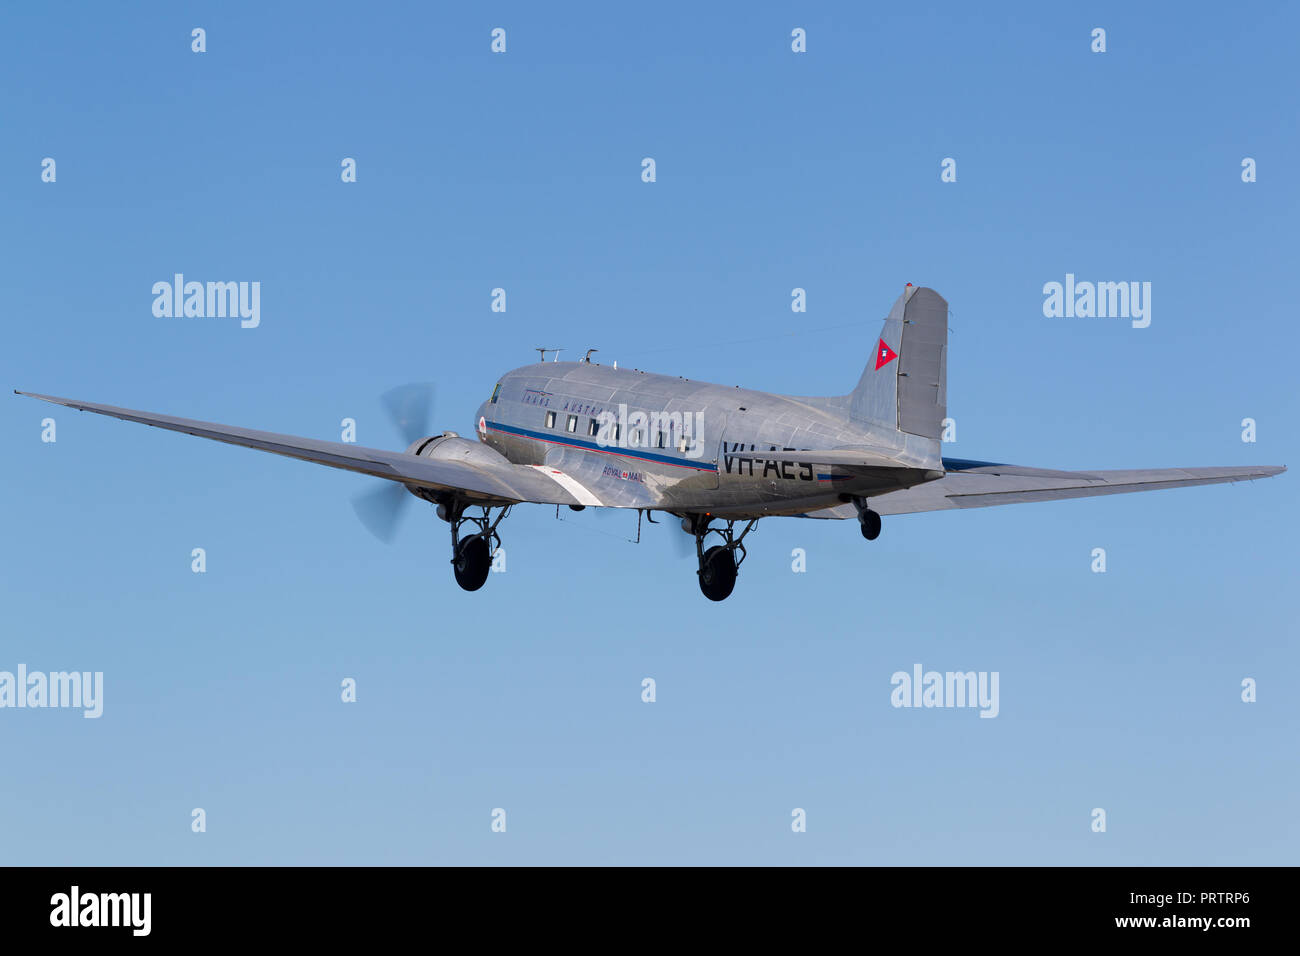 Vintage Douglas DC-3C airliner VH-AES in Trans Australian Airlines livery. - Stock Image